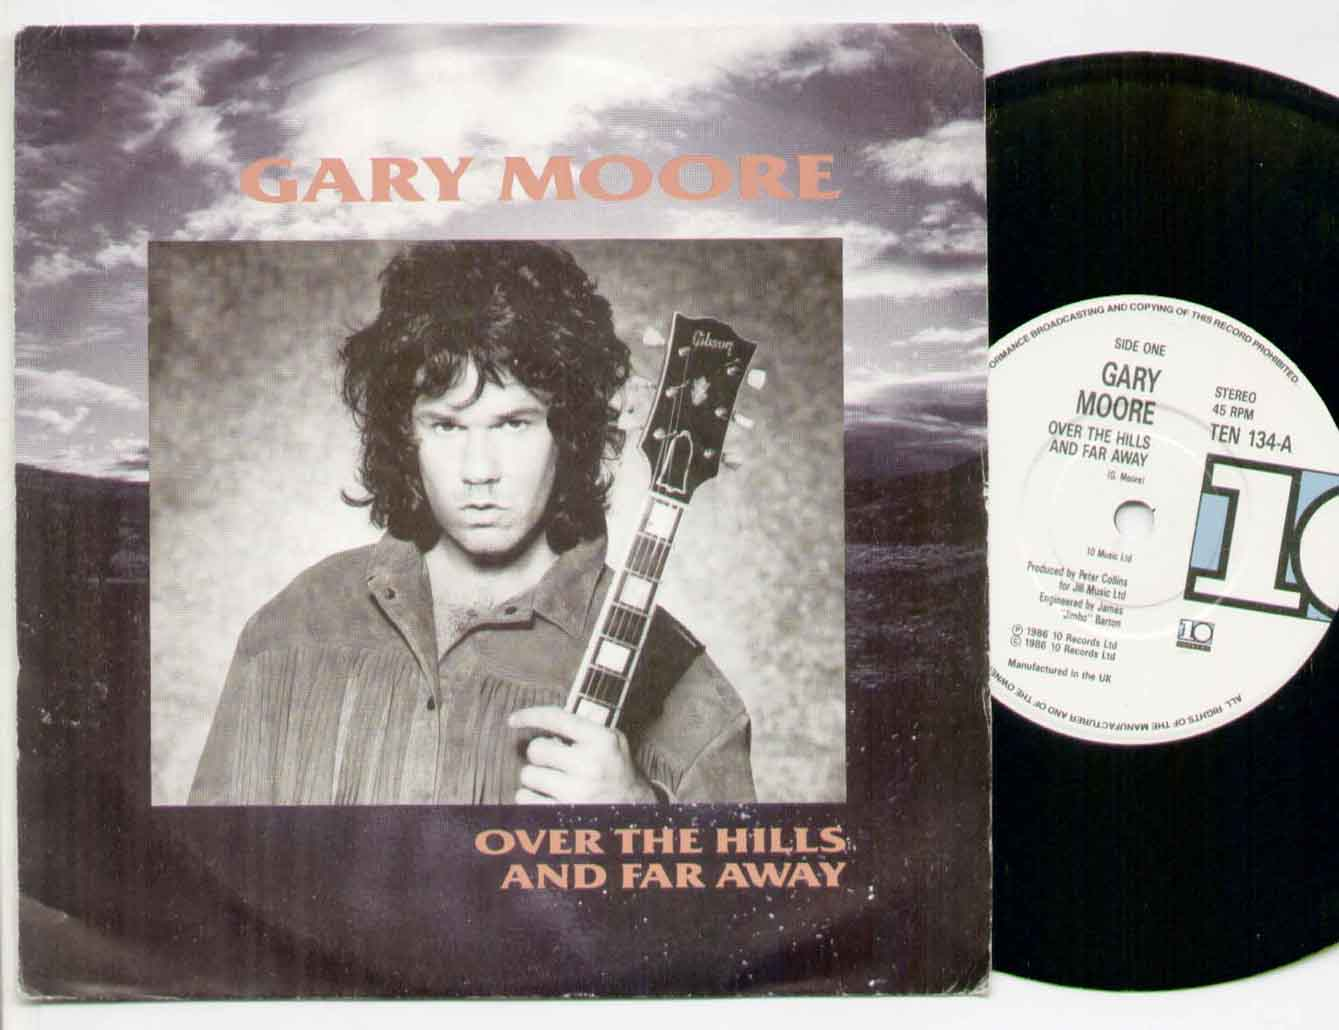 GARY MOORE - Over The Hills And Far Away Record